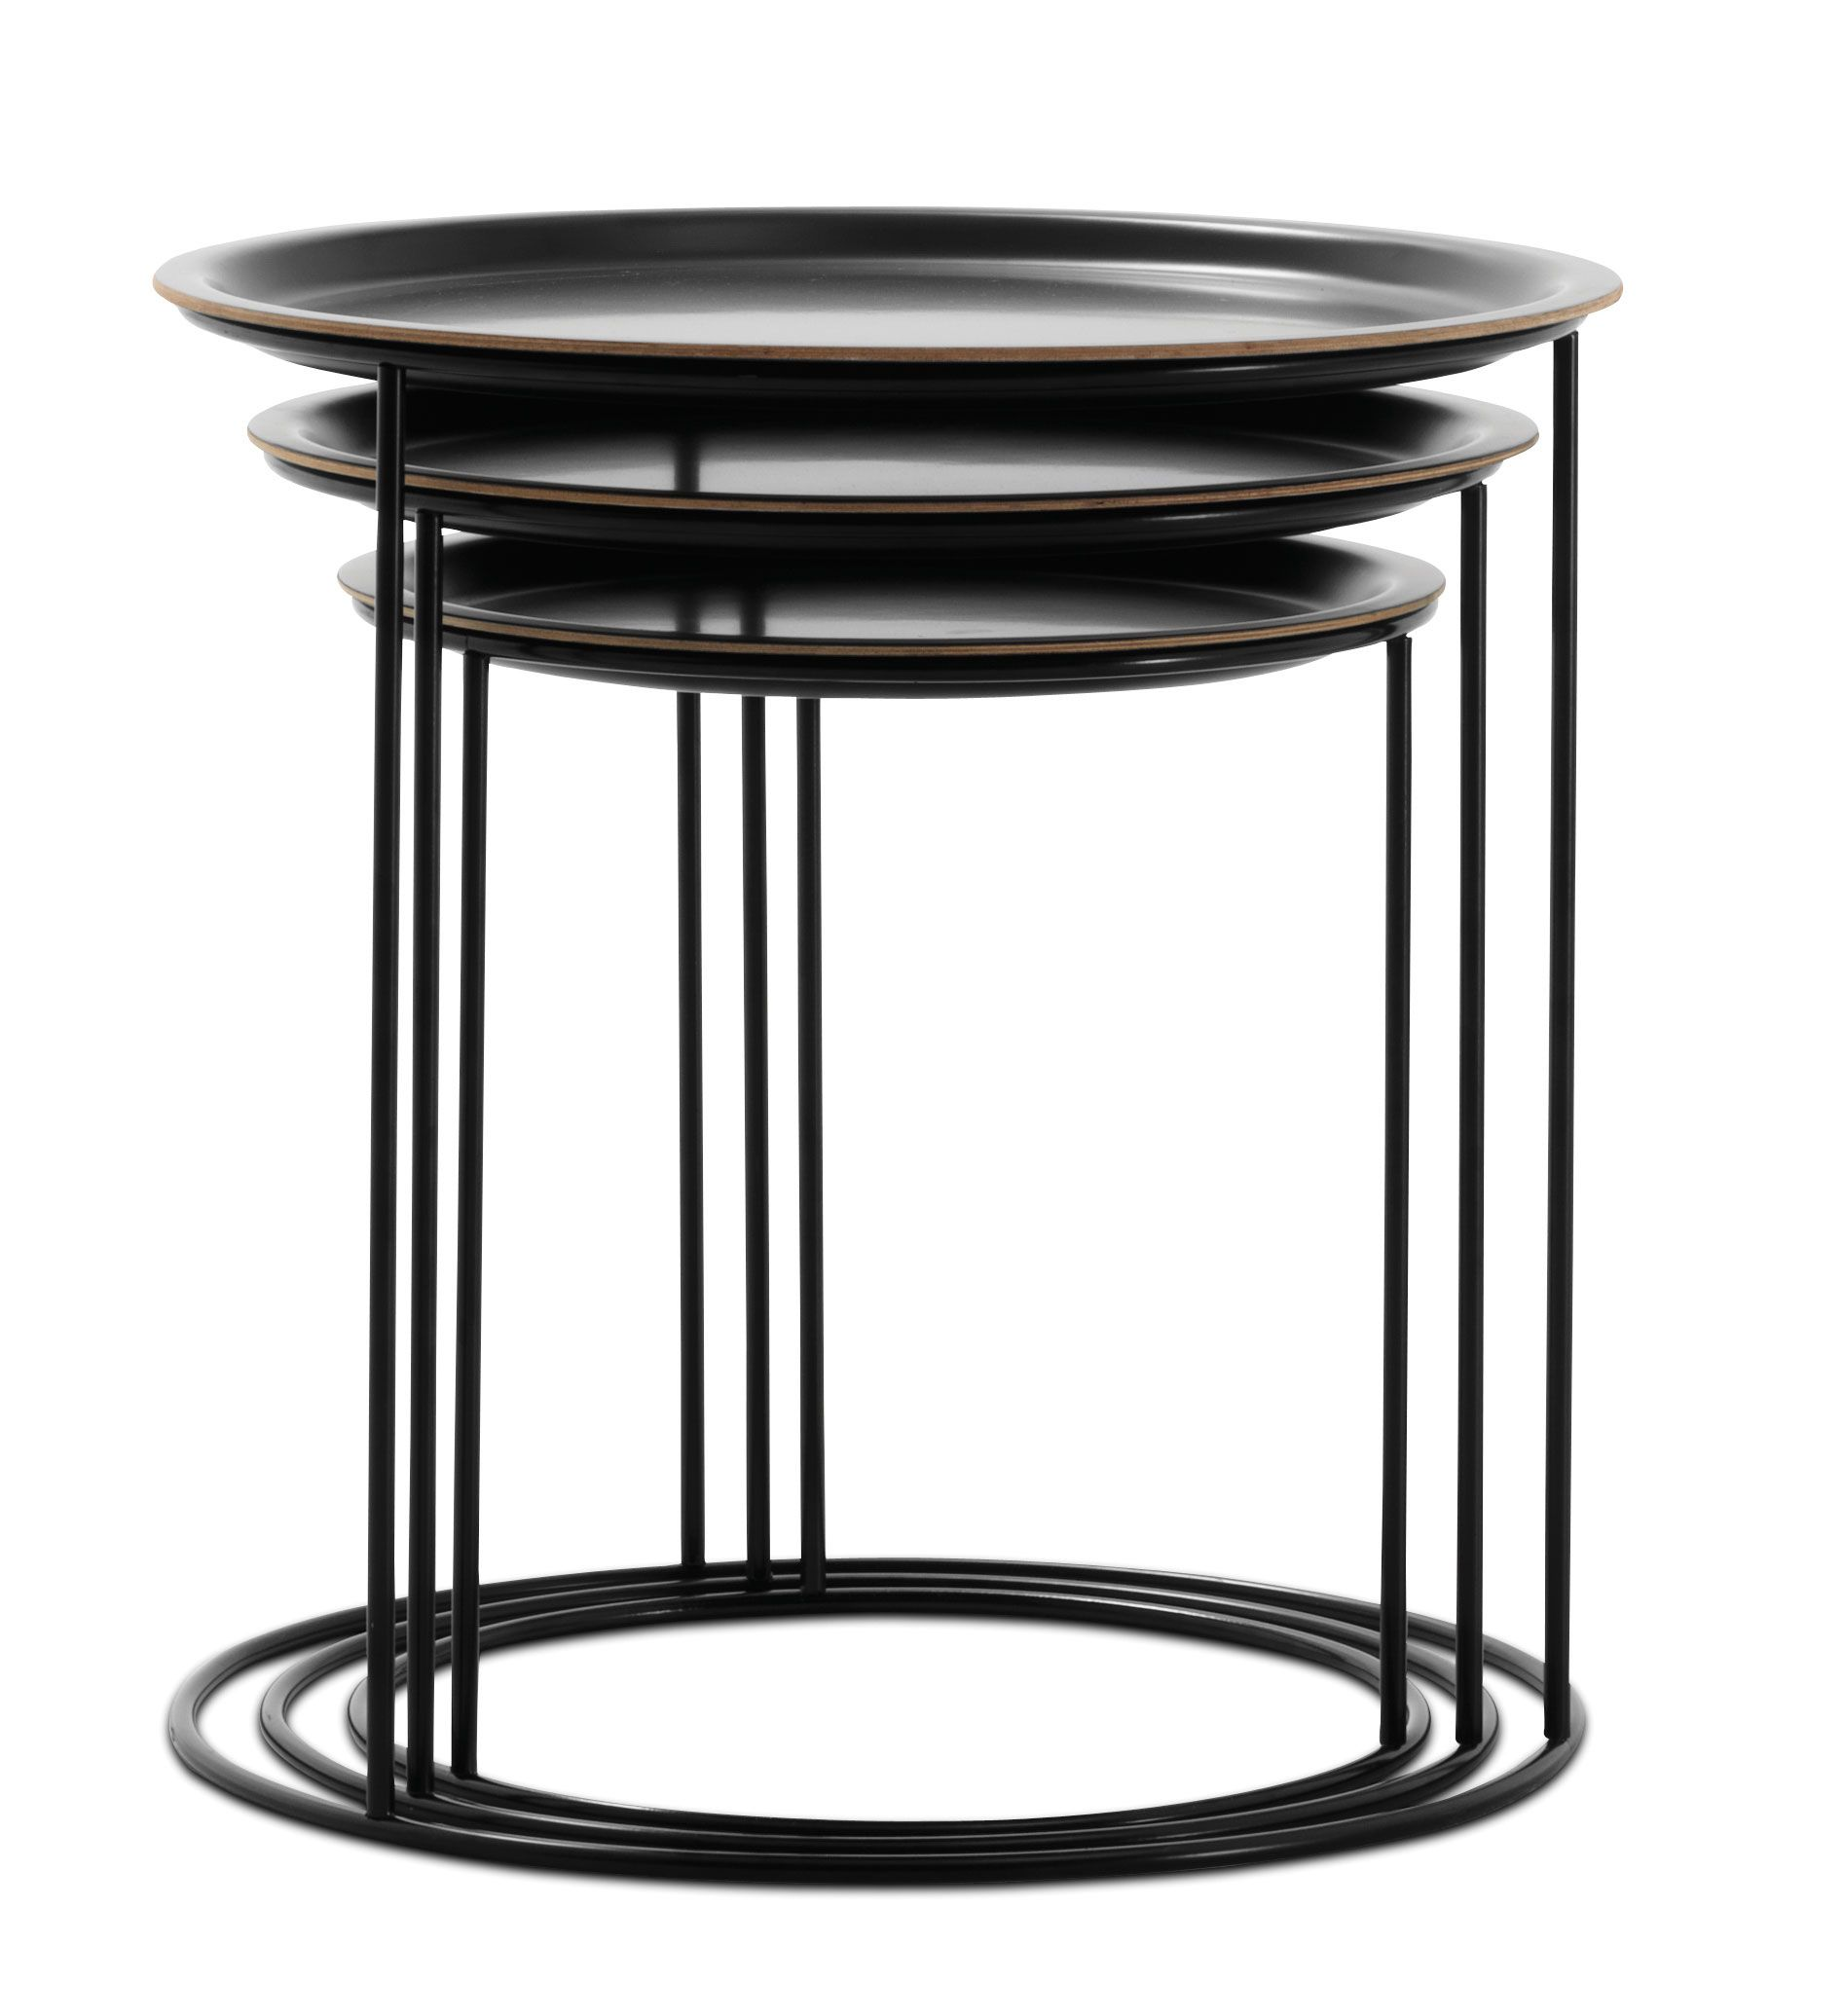 Functional Nest Of Tables Whose Tops Can Come Off And Be Used As Trays Side Table Contemporary Coffee Table Coffee Table Design